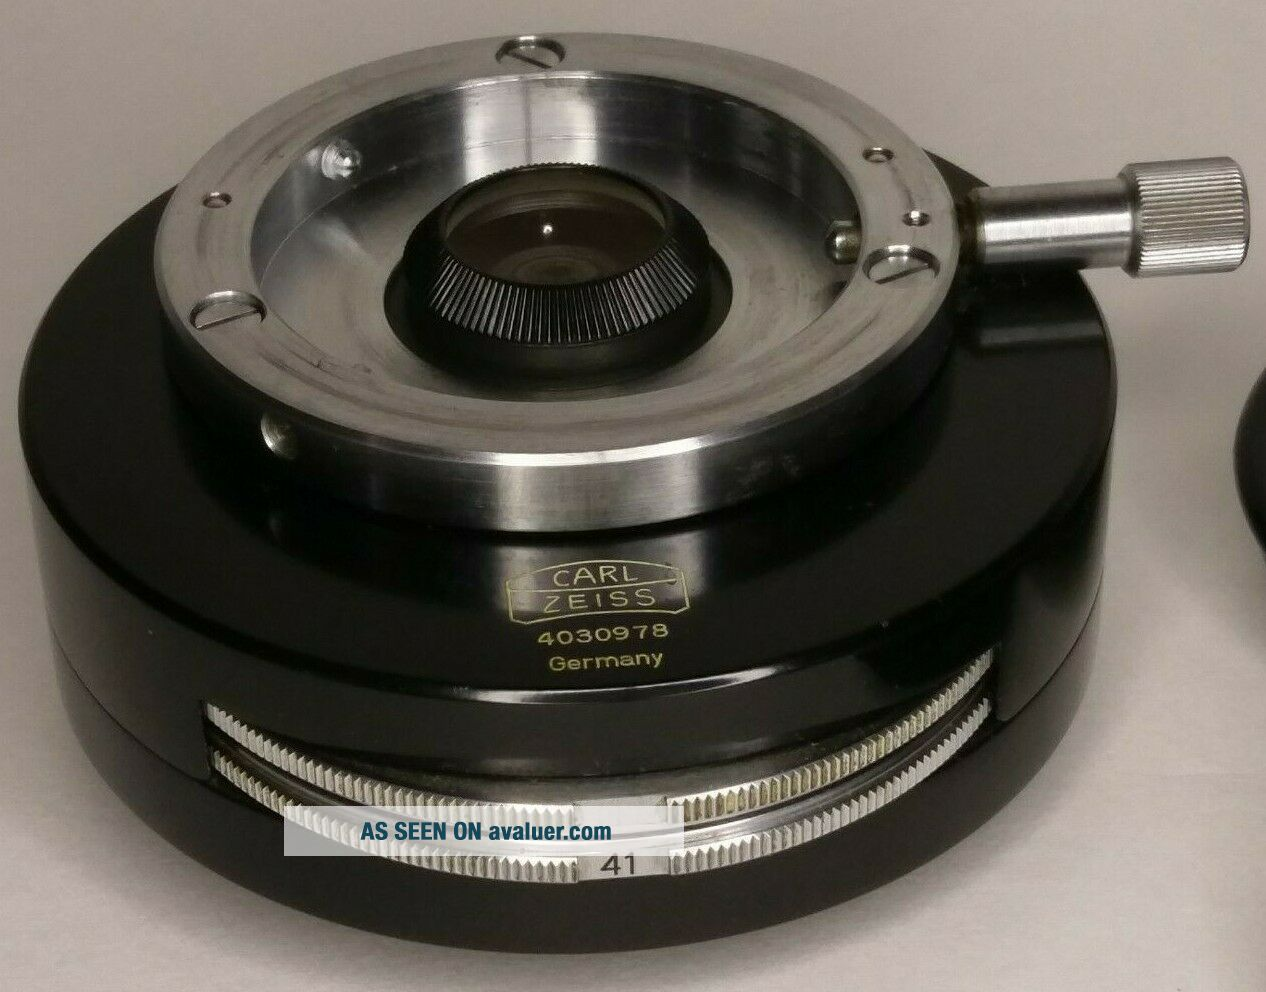 Zeiss Microscope WL Standard Barrier Filter Intermediate Tube and Rare